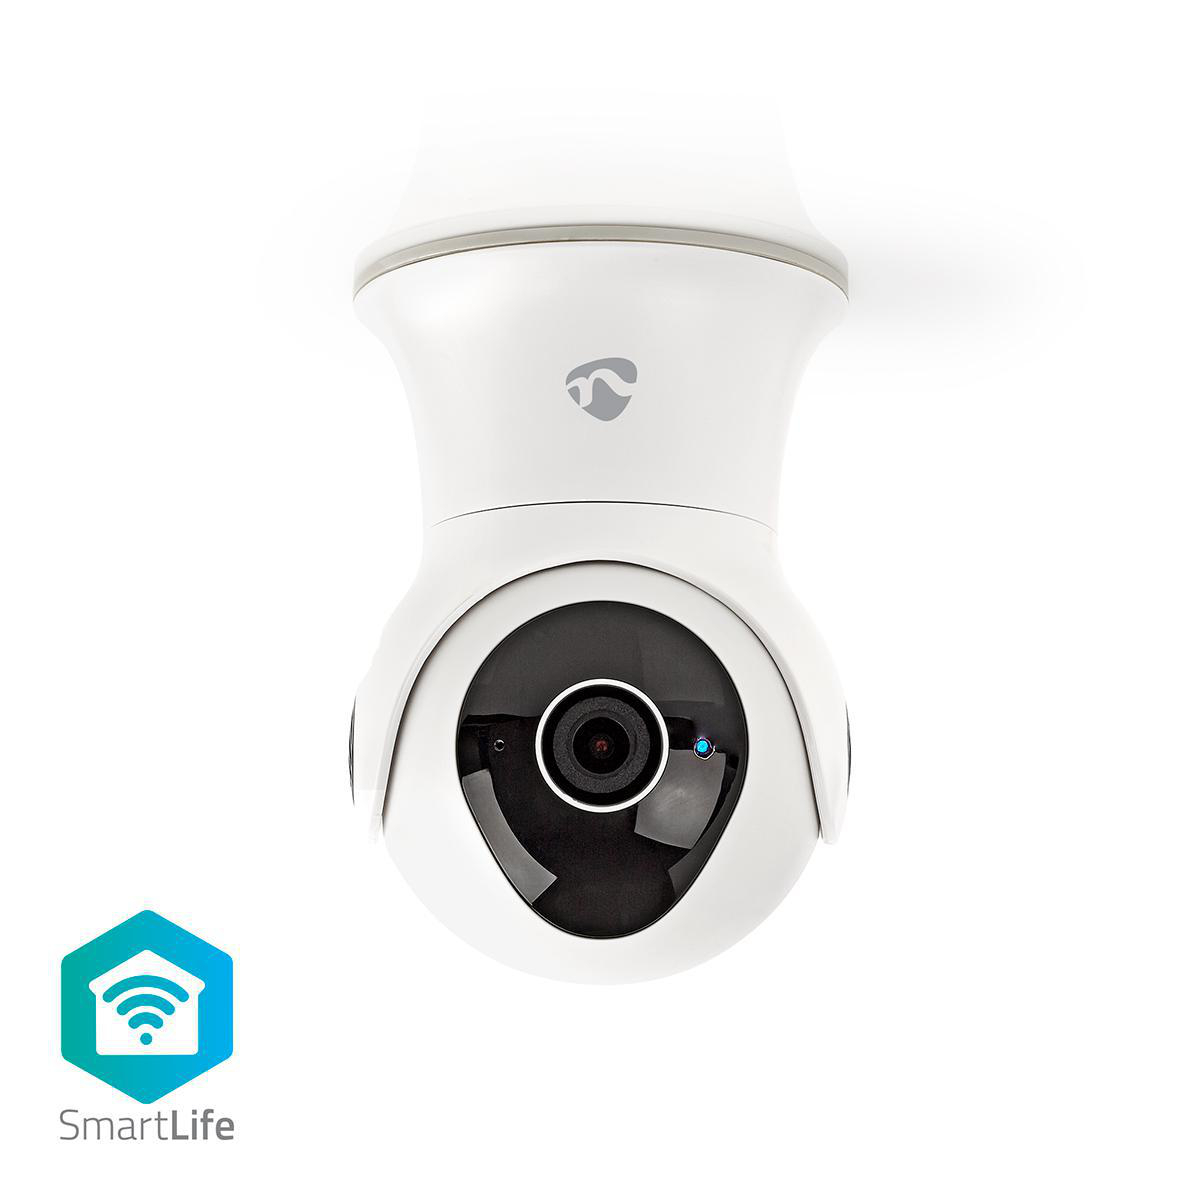 How to install... SmartLife 'UpDown' Indoor Camera